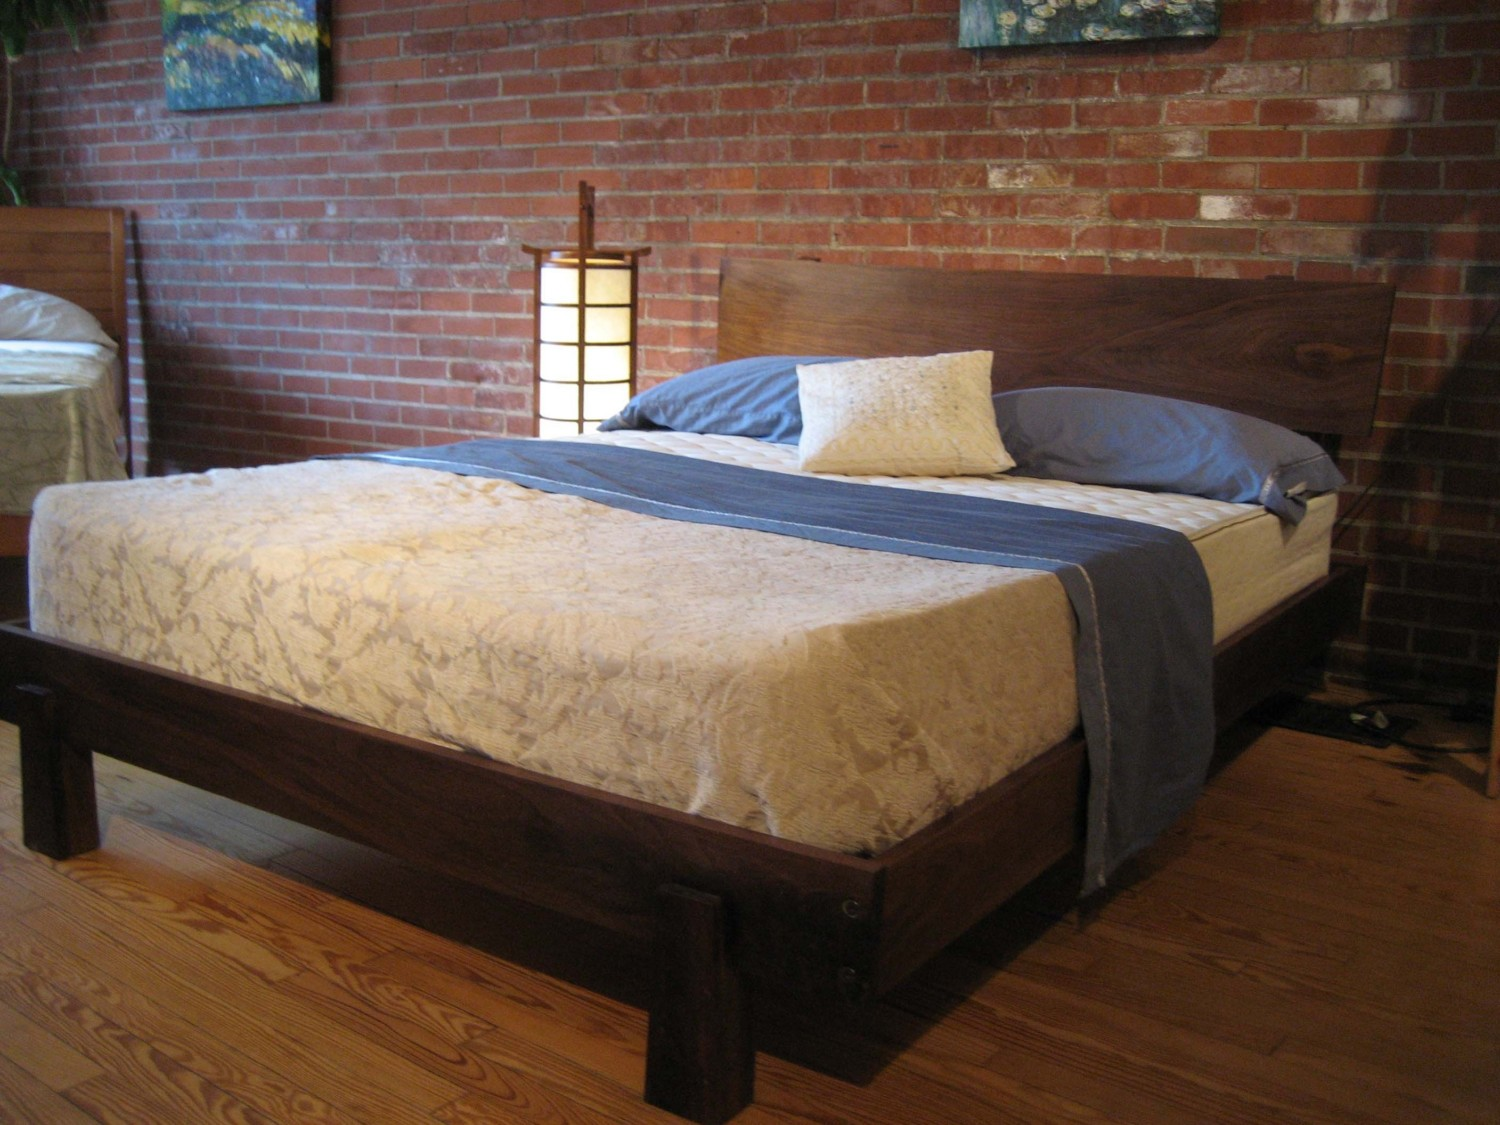 Diy Wood Bed Platform Plans Wooden Pdf Build Your Own